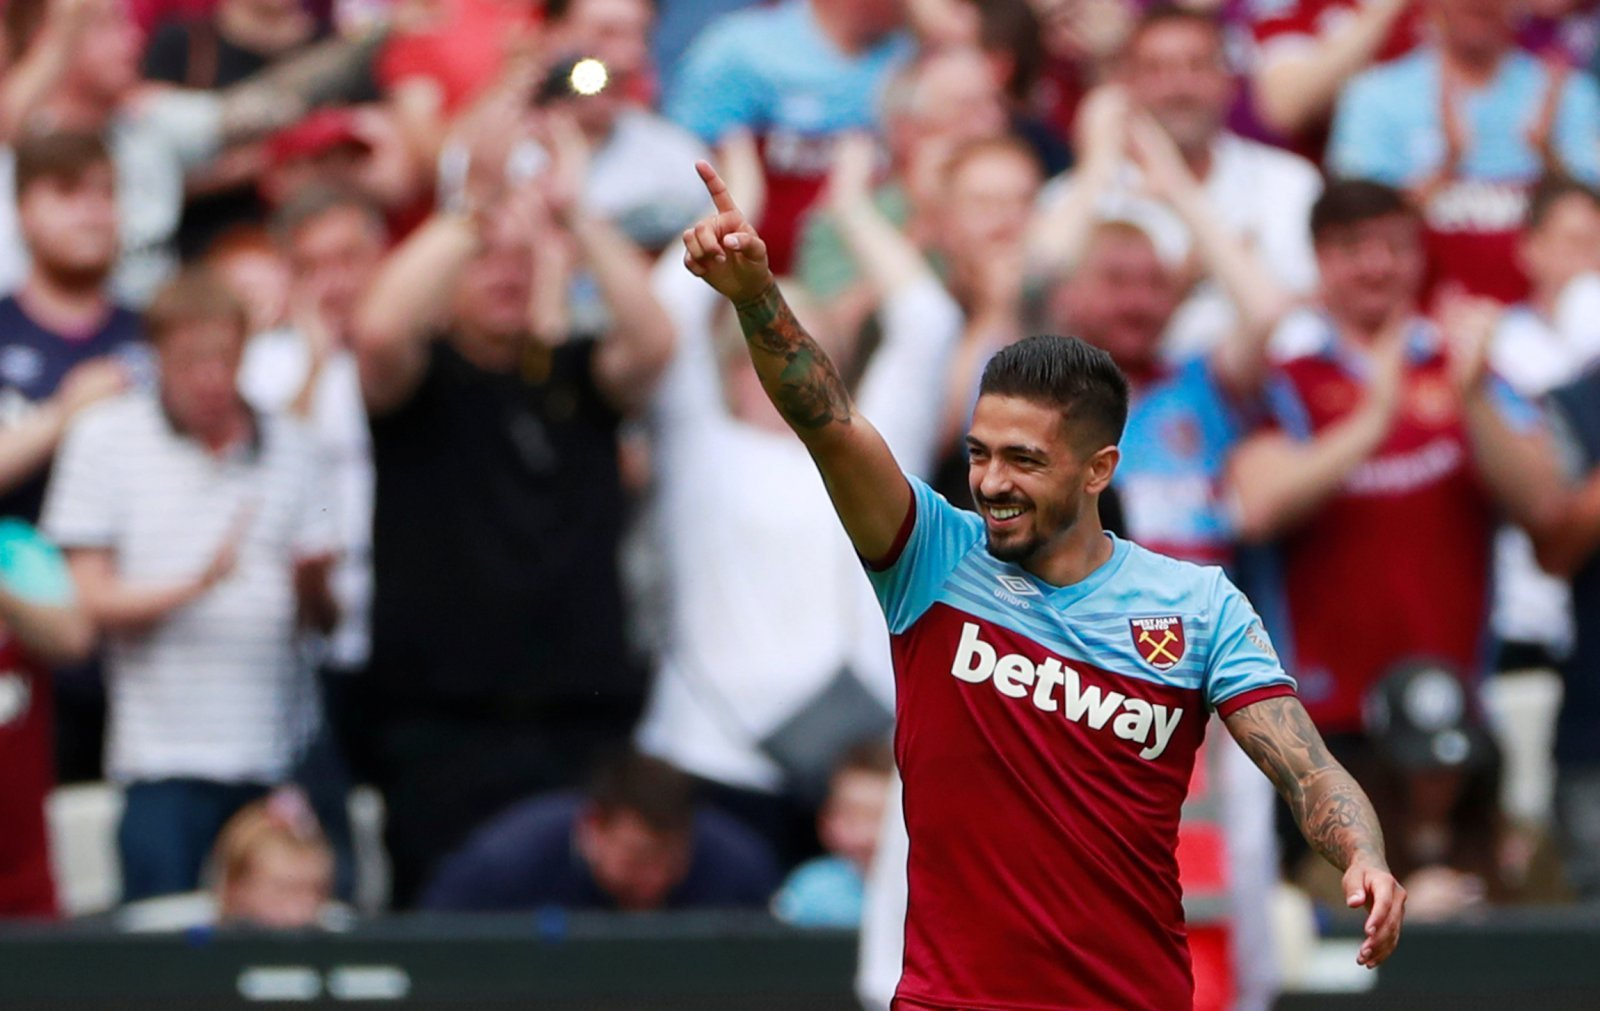 West Ham United: Close to agreeing terms with Manuel Lanzini